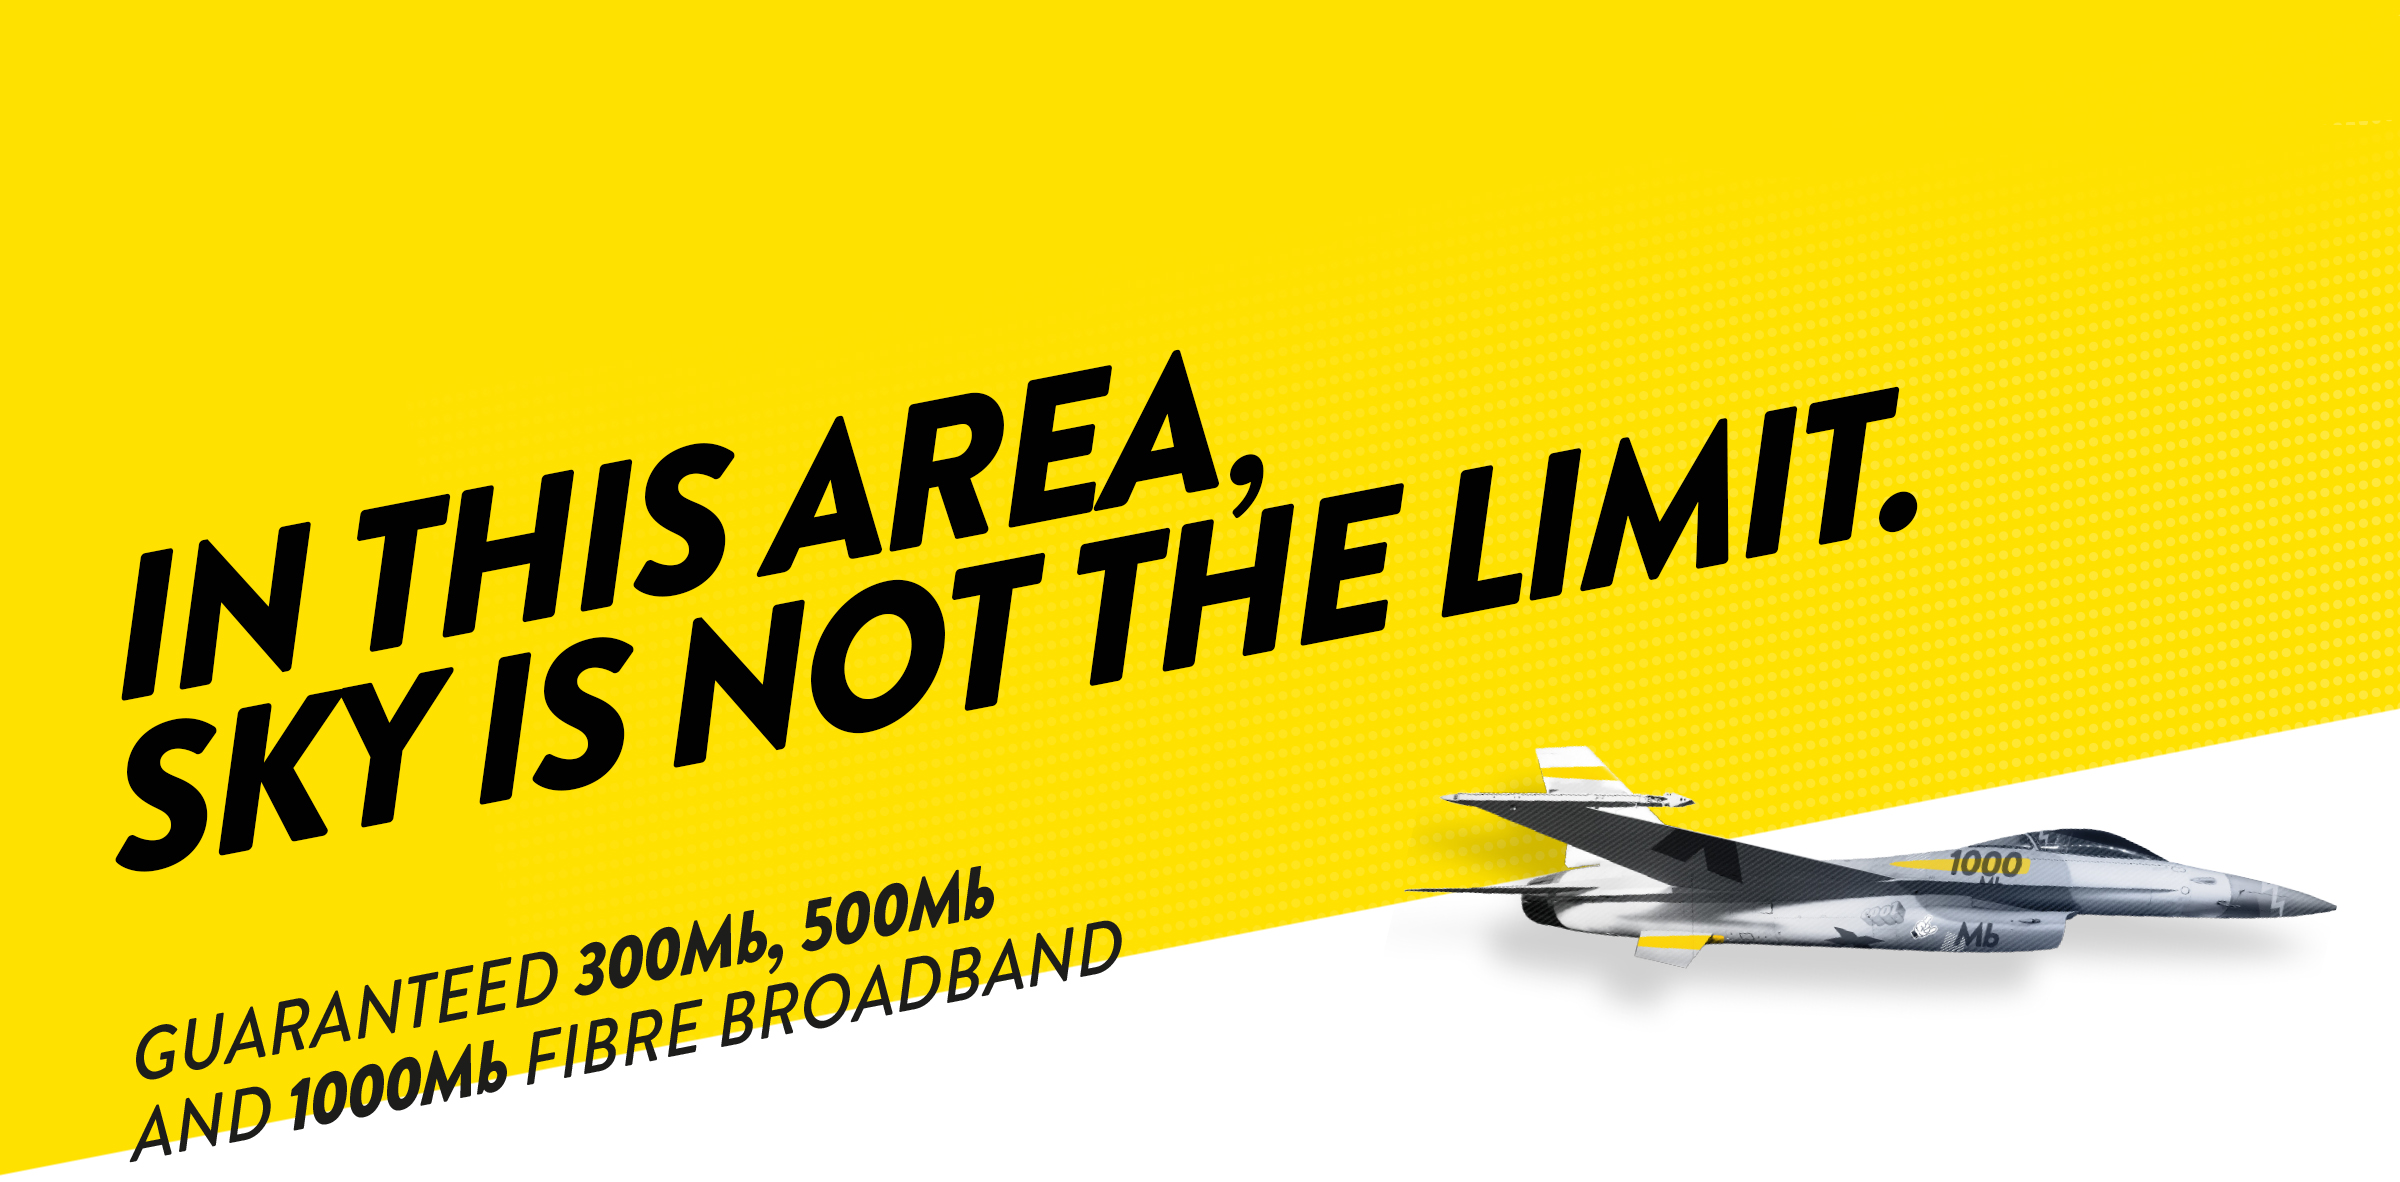 IN THIS AREA, SKY IS NOT THE LIMIT. Guaranteed 300mb, 500mb and 1000mb Fibre Broadband.